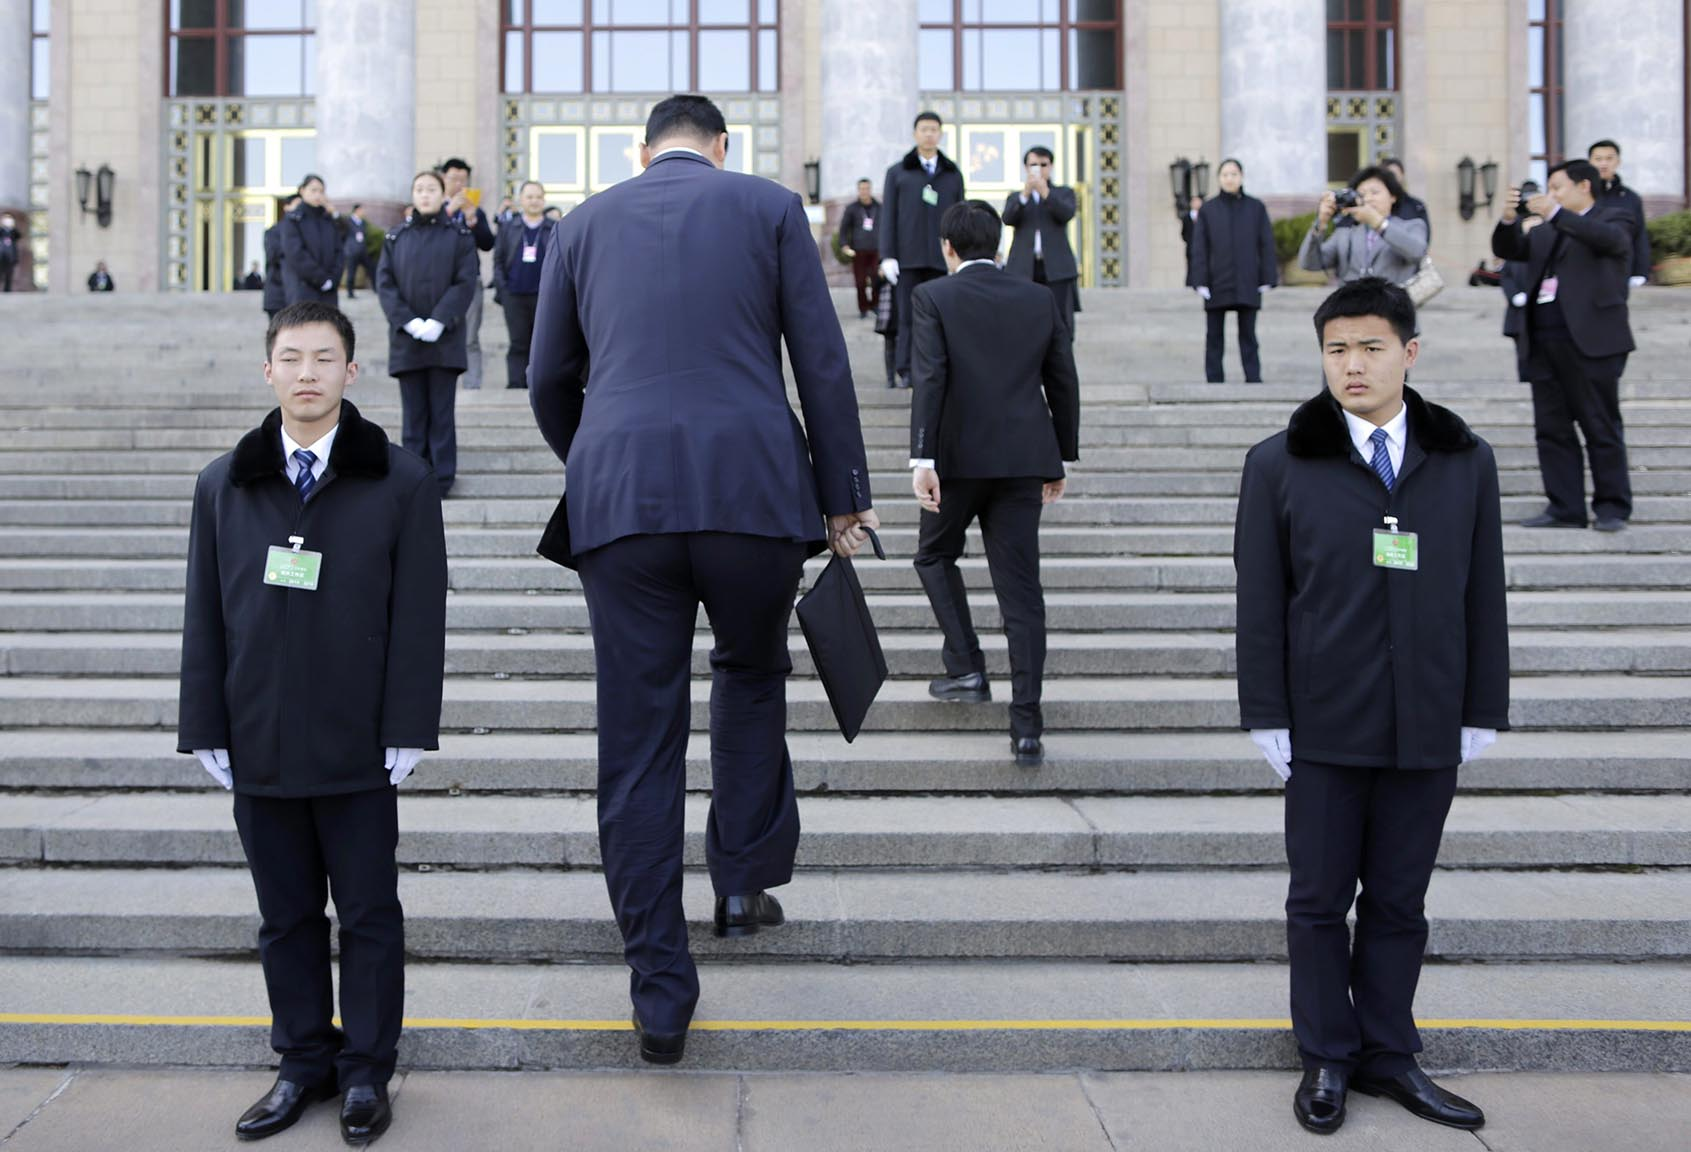 Former NBA basketball player Yao walks past security personnel as he arrives for the closing session of the CPPCC outside the Great Hall of the People, in Beijing